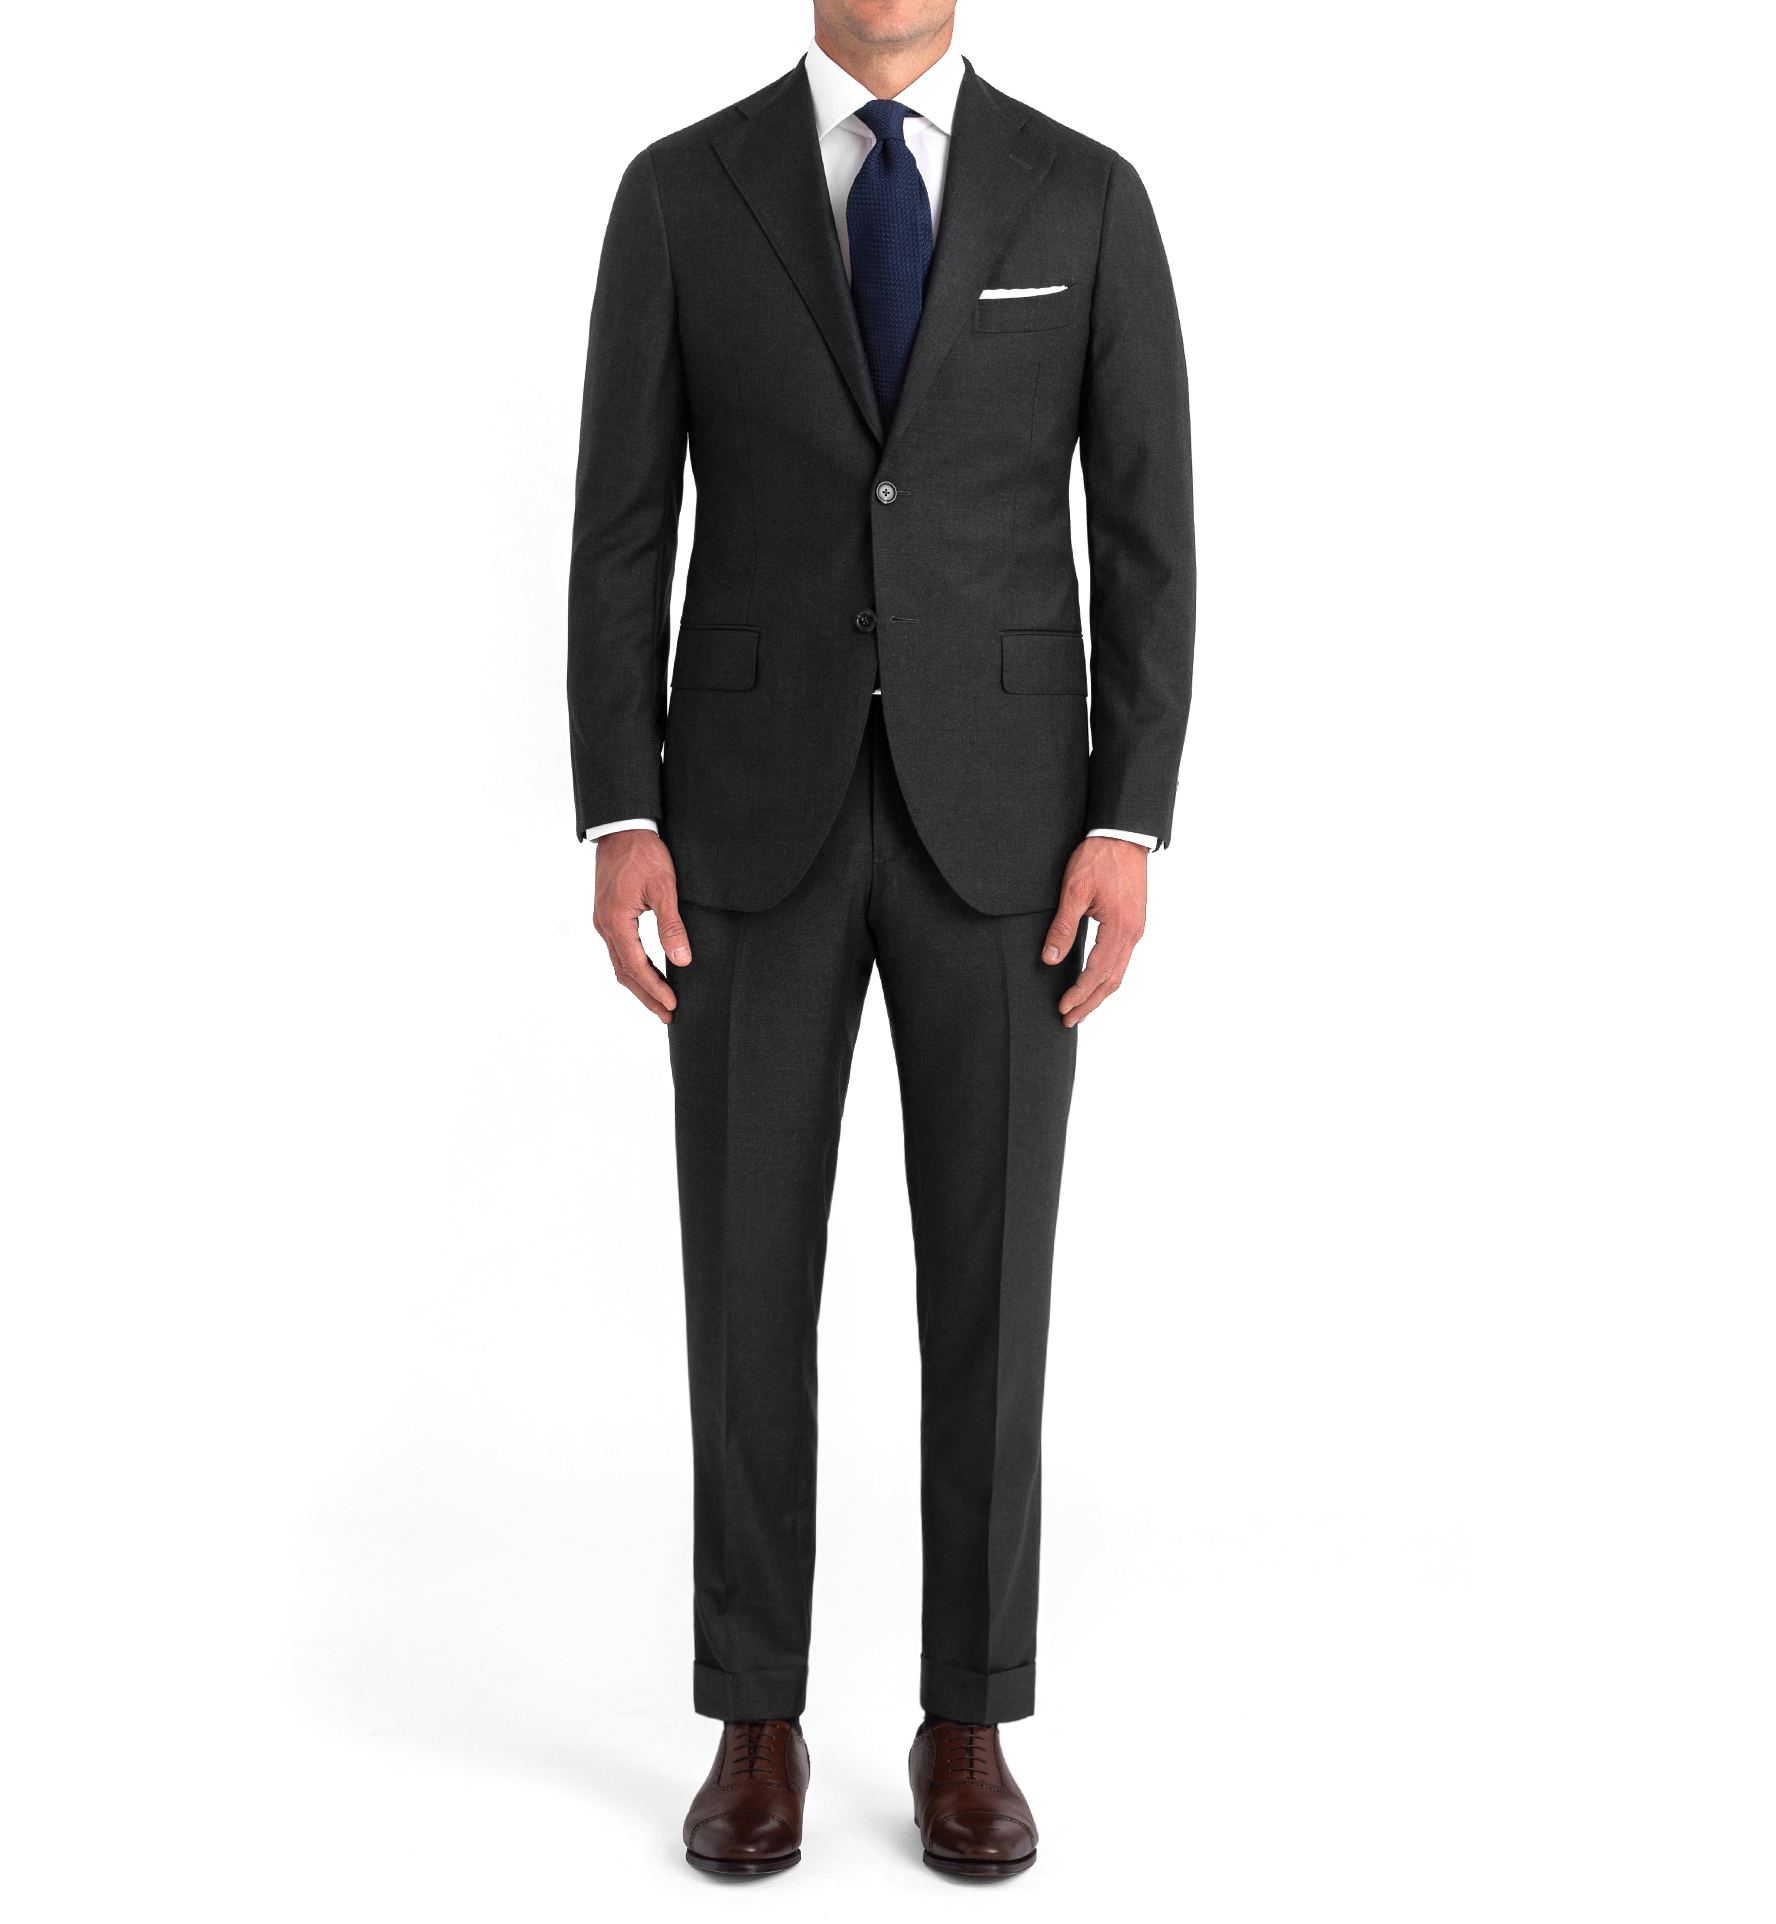 Zoom Image of Allen Charcoal S110s Wool Suit with Cuffed Trouser